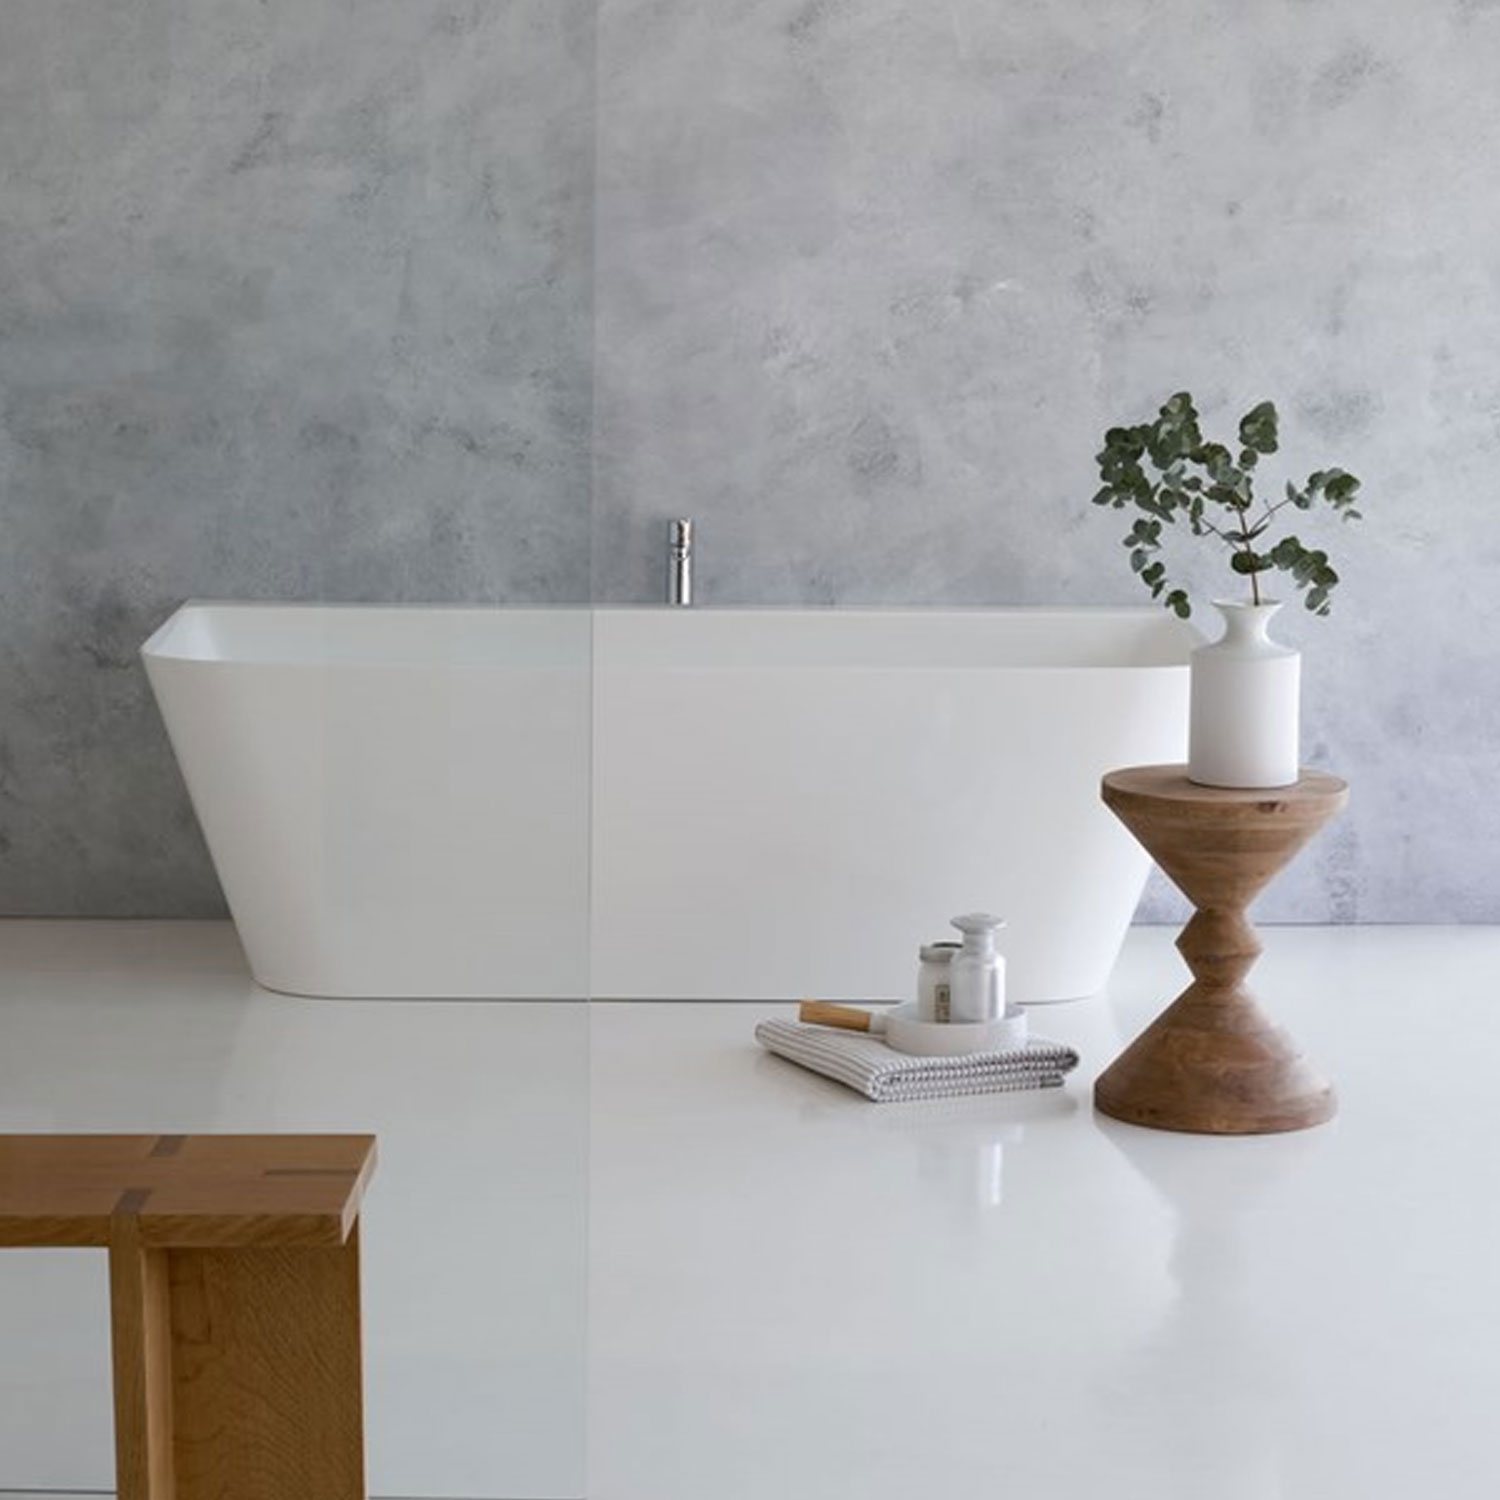 Clearwater Patinato Grande Freestanding Bath 1690mm x 800mm - Clear Stone-0